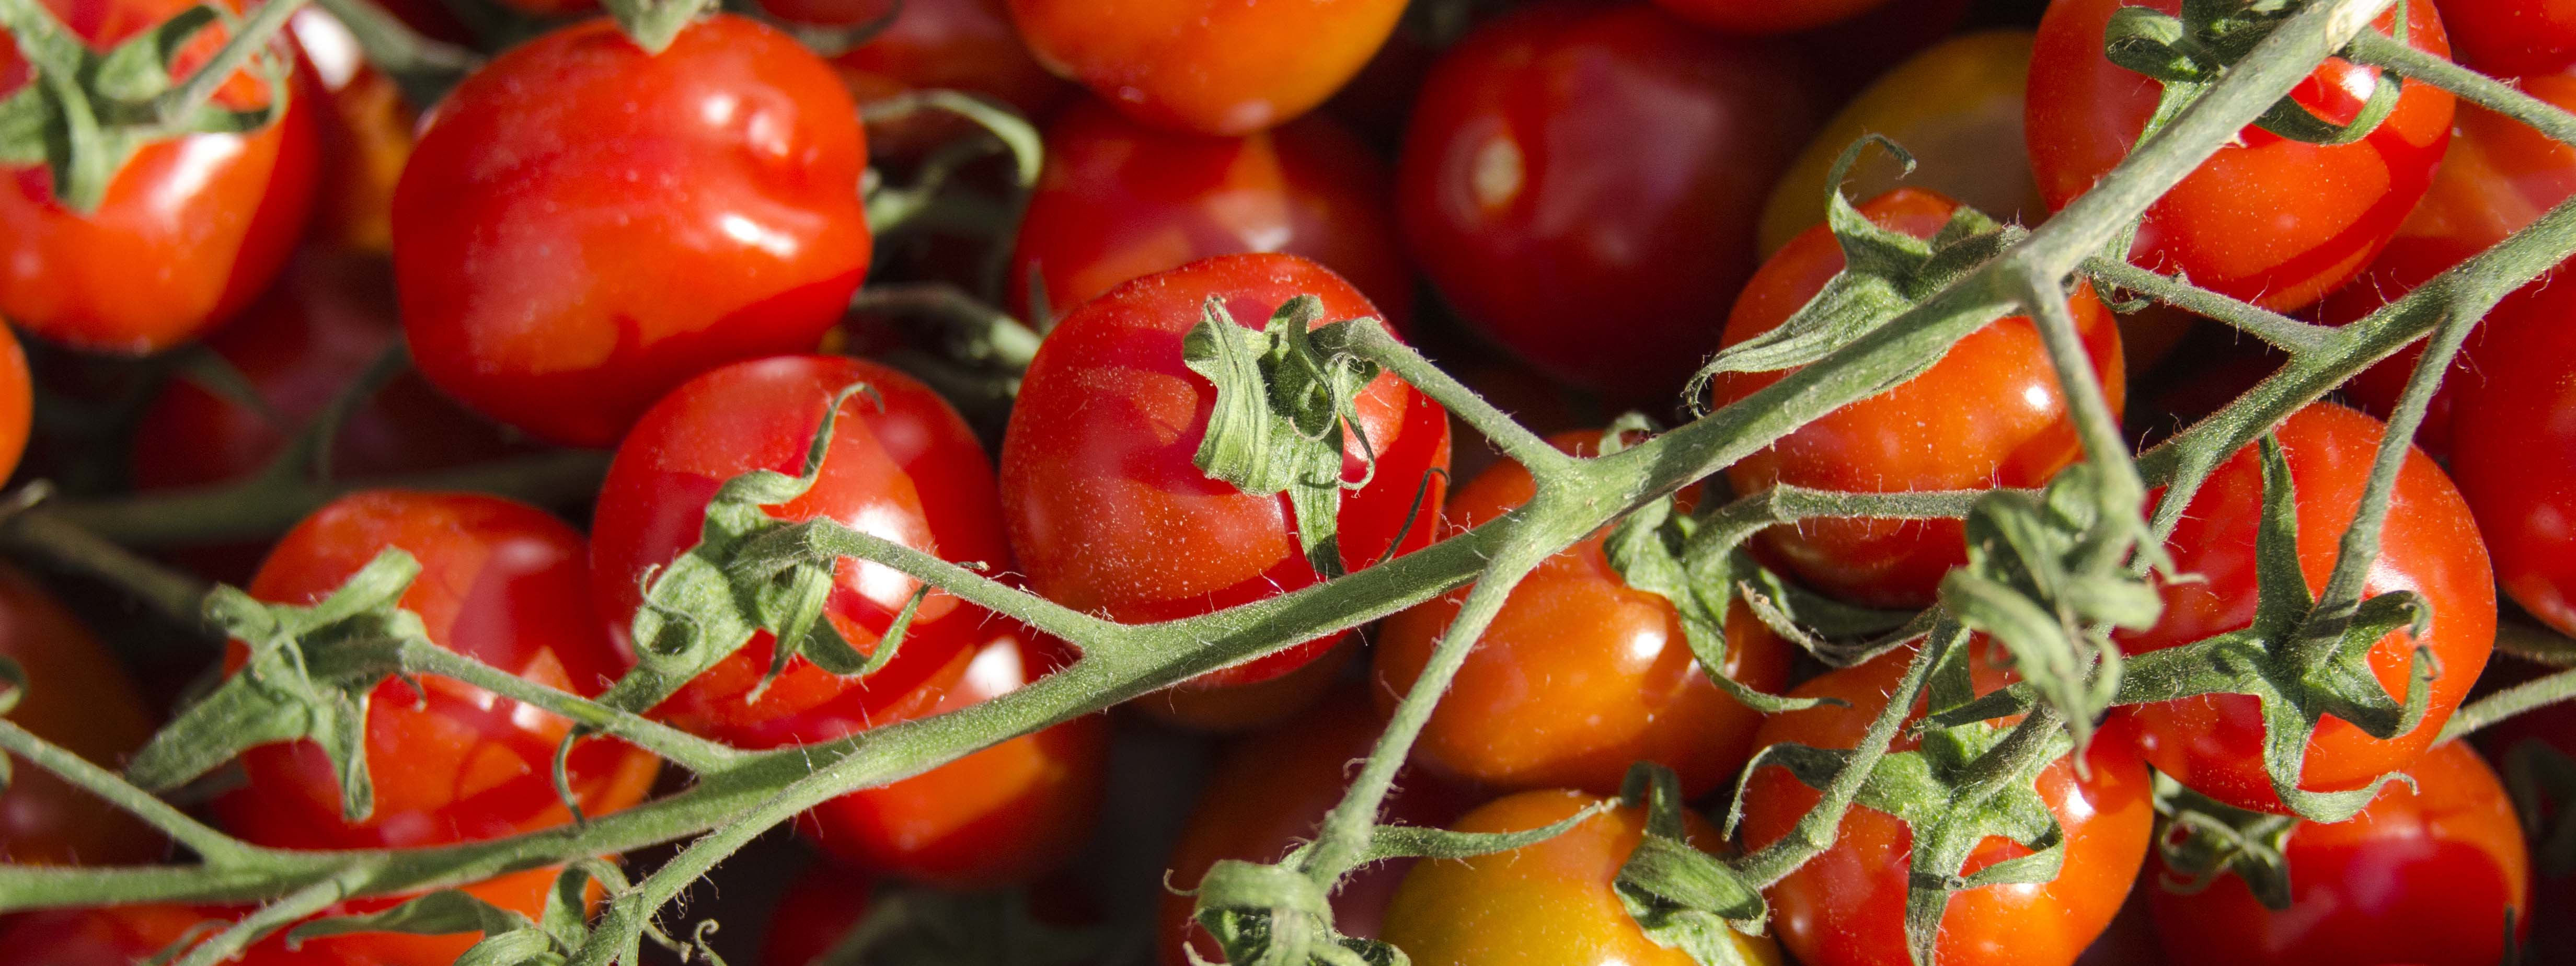 Close-up of red cherry tomatoes